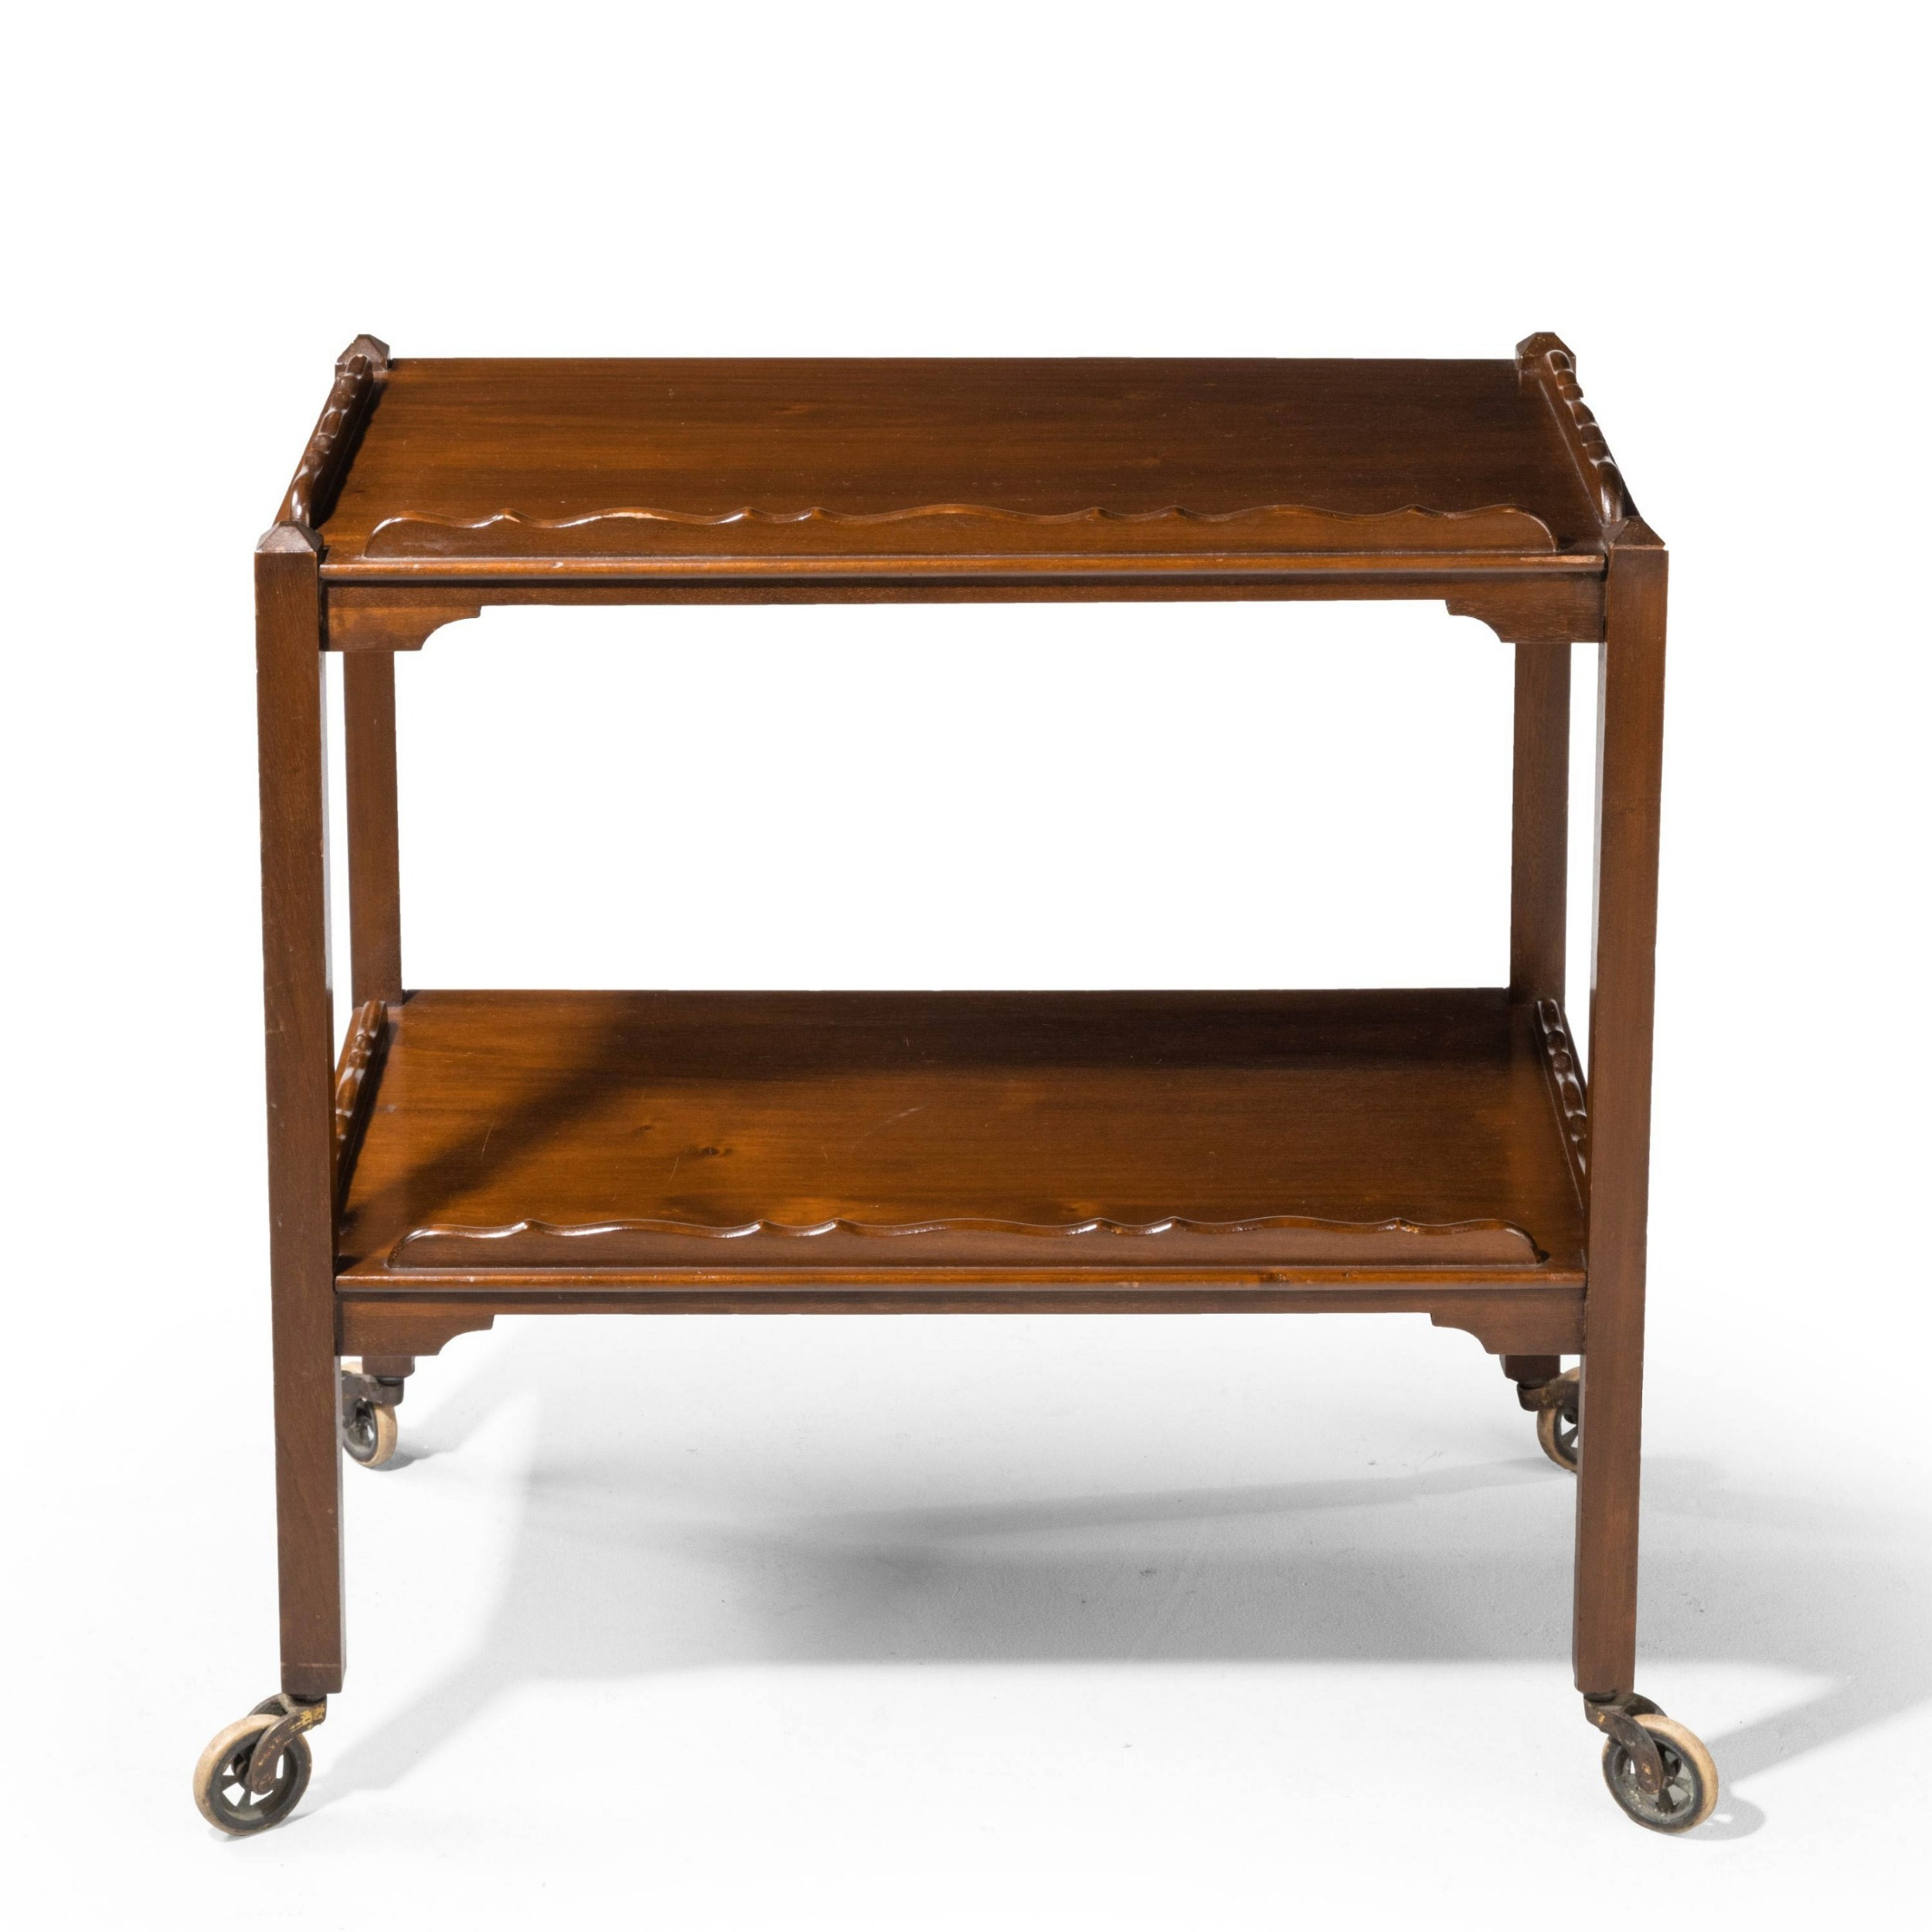 an early 19th century mahogany trolley or dinner wagon